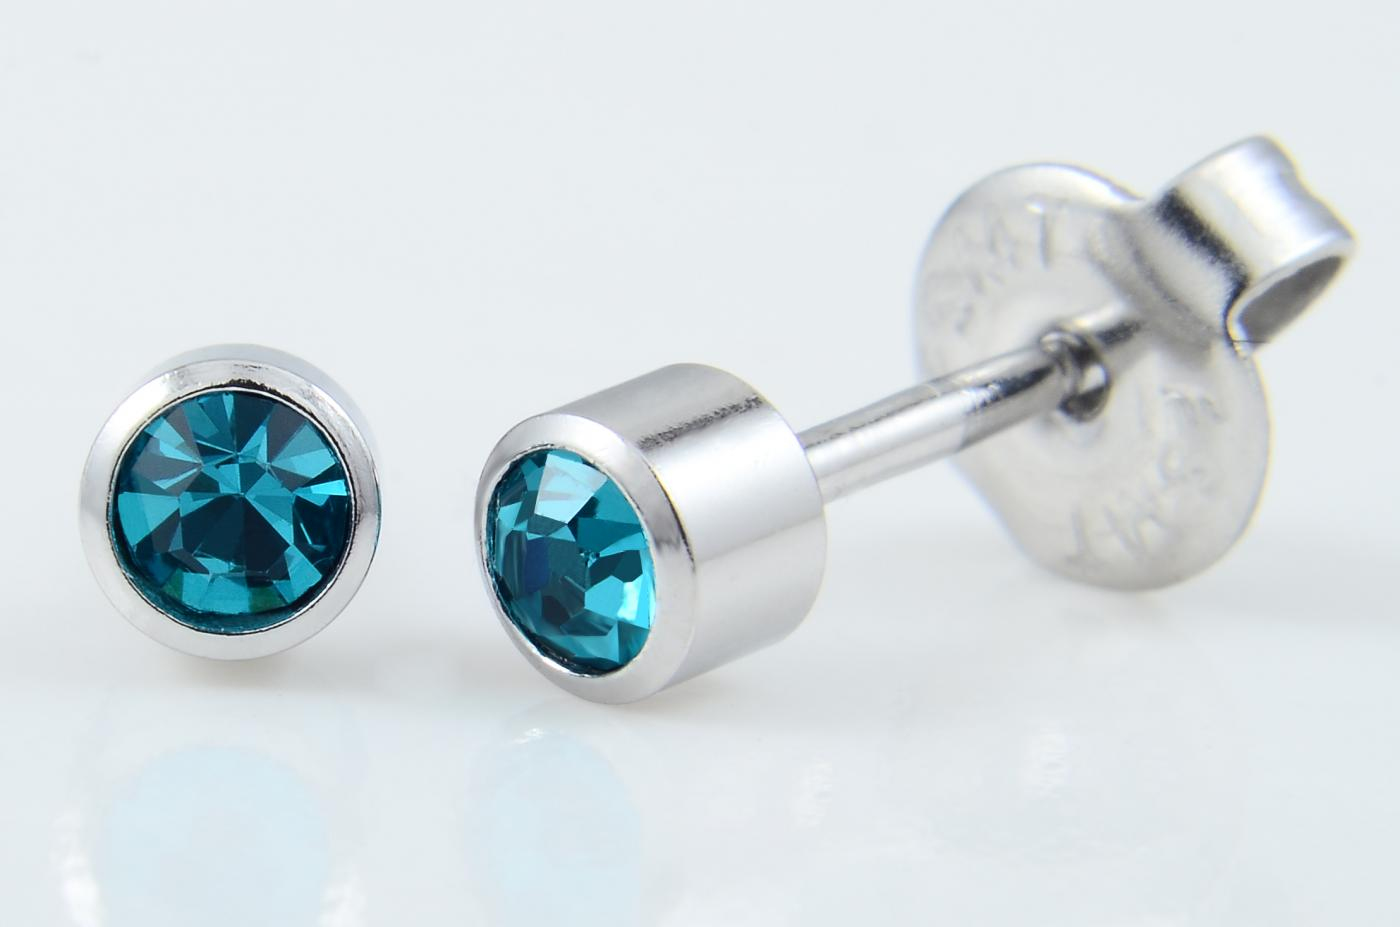 21-312 Bezel Birthstone,Blue Zircon SS (previously 224) image